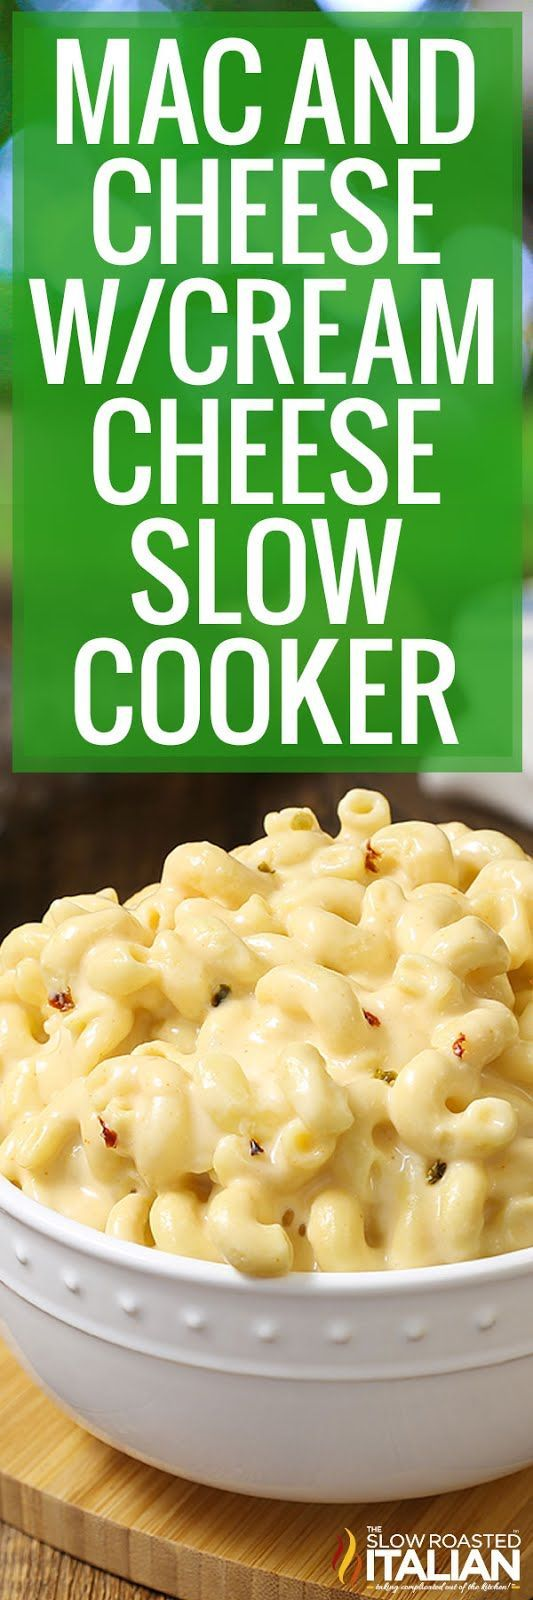 Mac And Cheese With Cream Cheese Slow Cooker Video Crockpot Recipes Slow Cooker Mac And Cheese Homemade Pasta Dishes